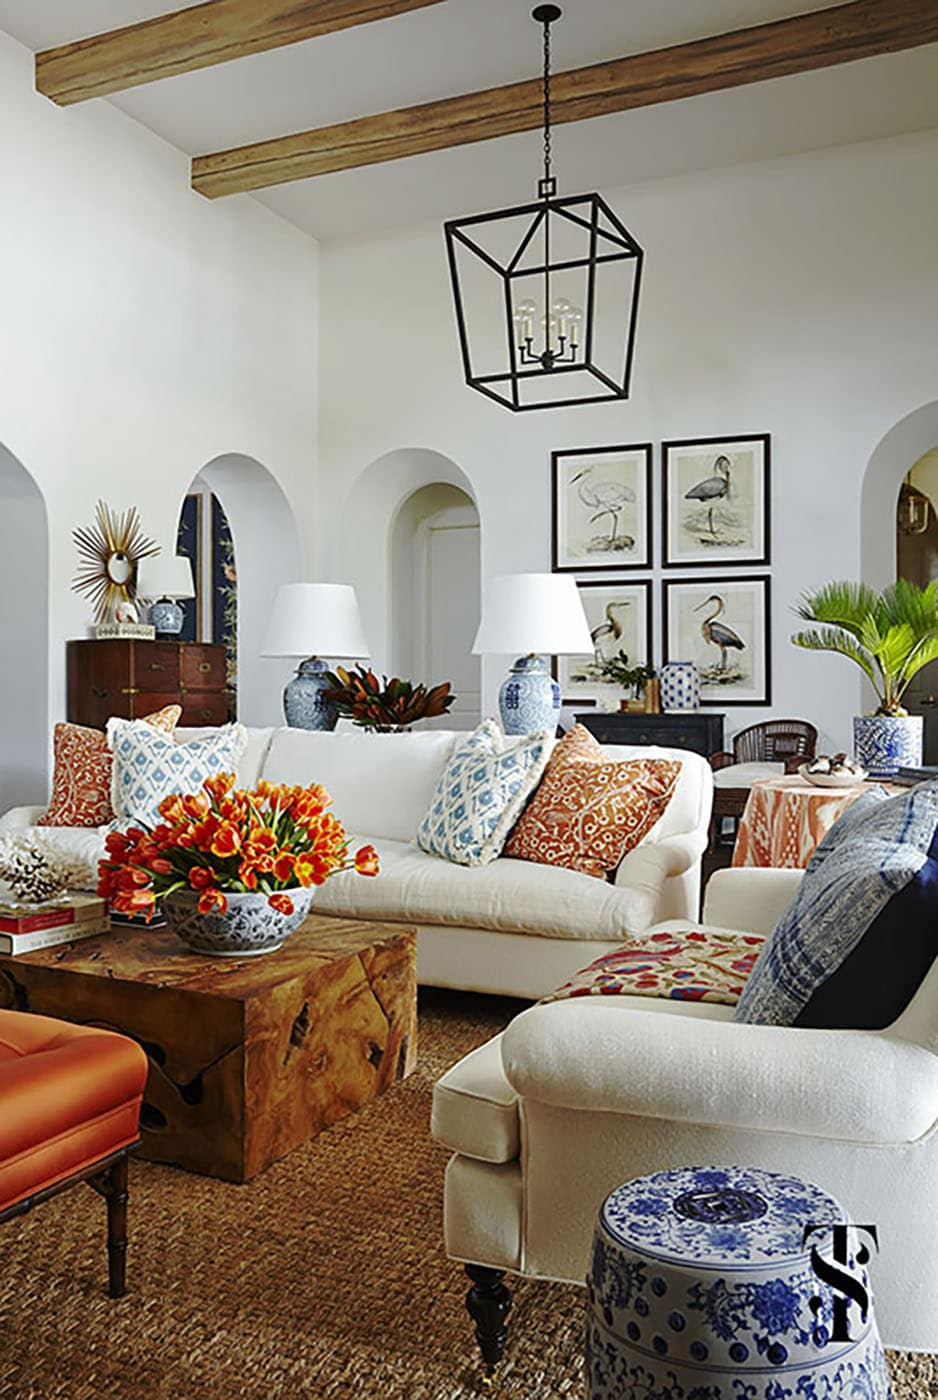 Summer Thornton Naples Project featured on Cindy Hattersley Design